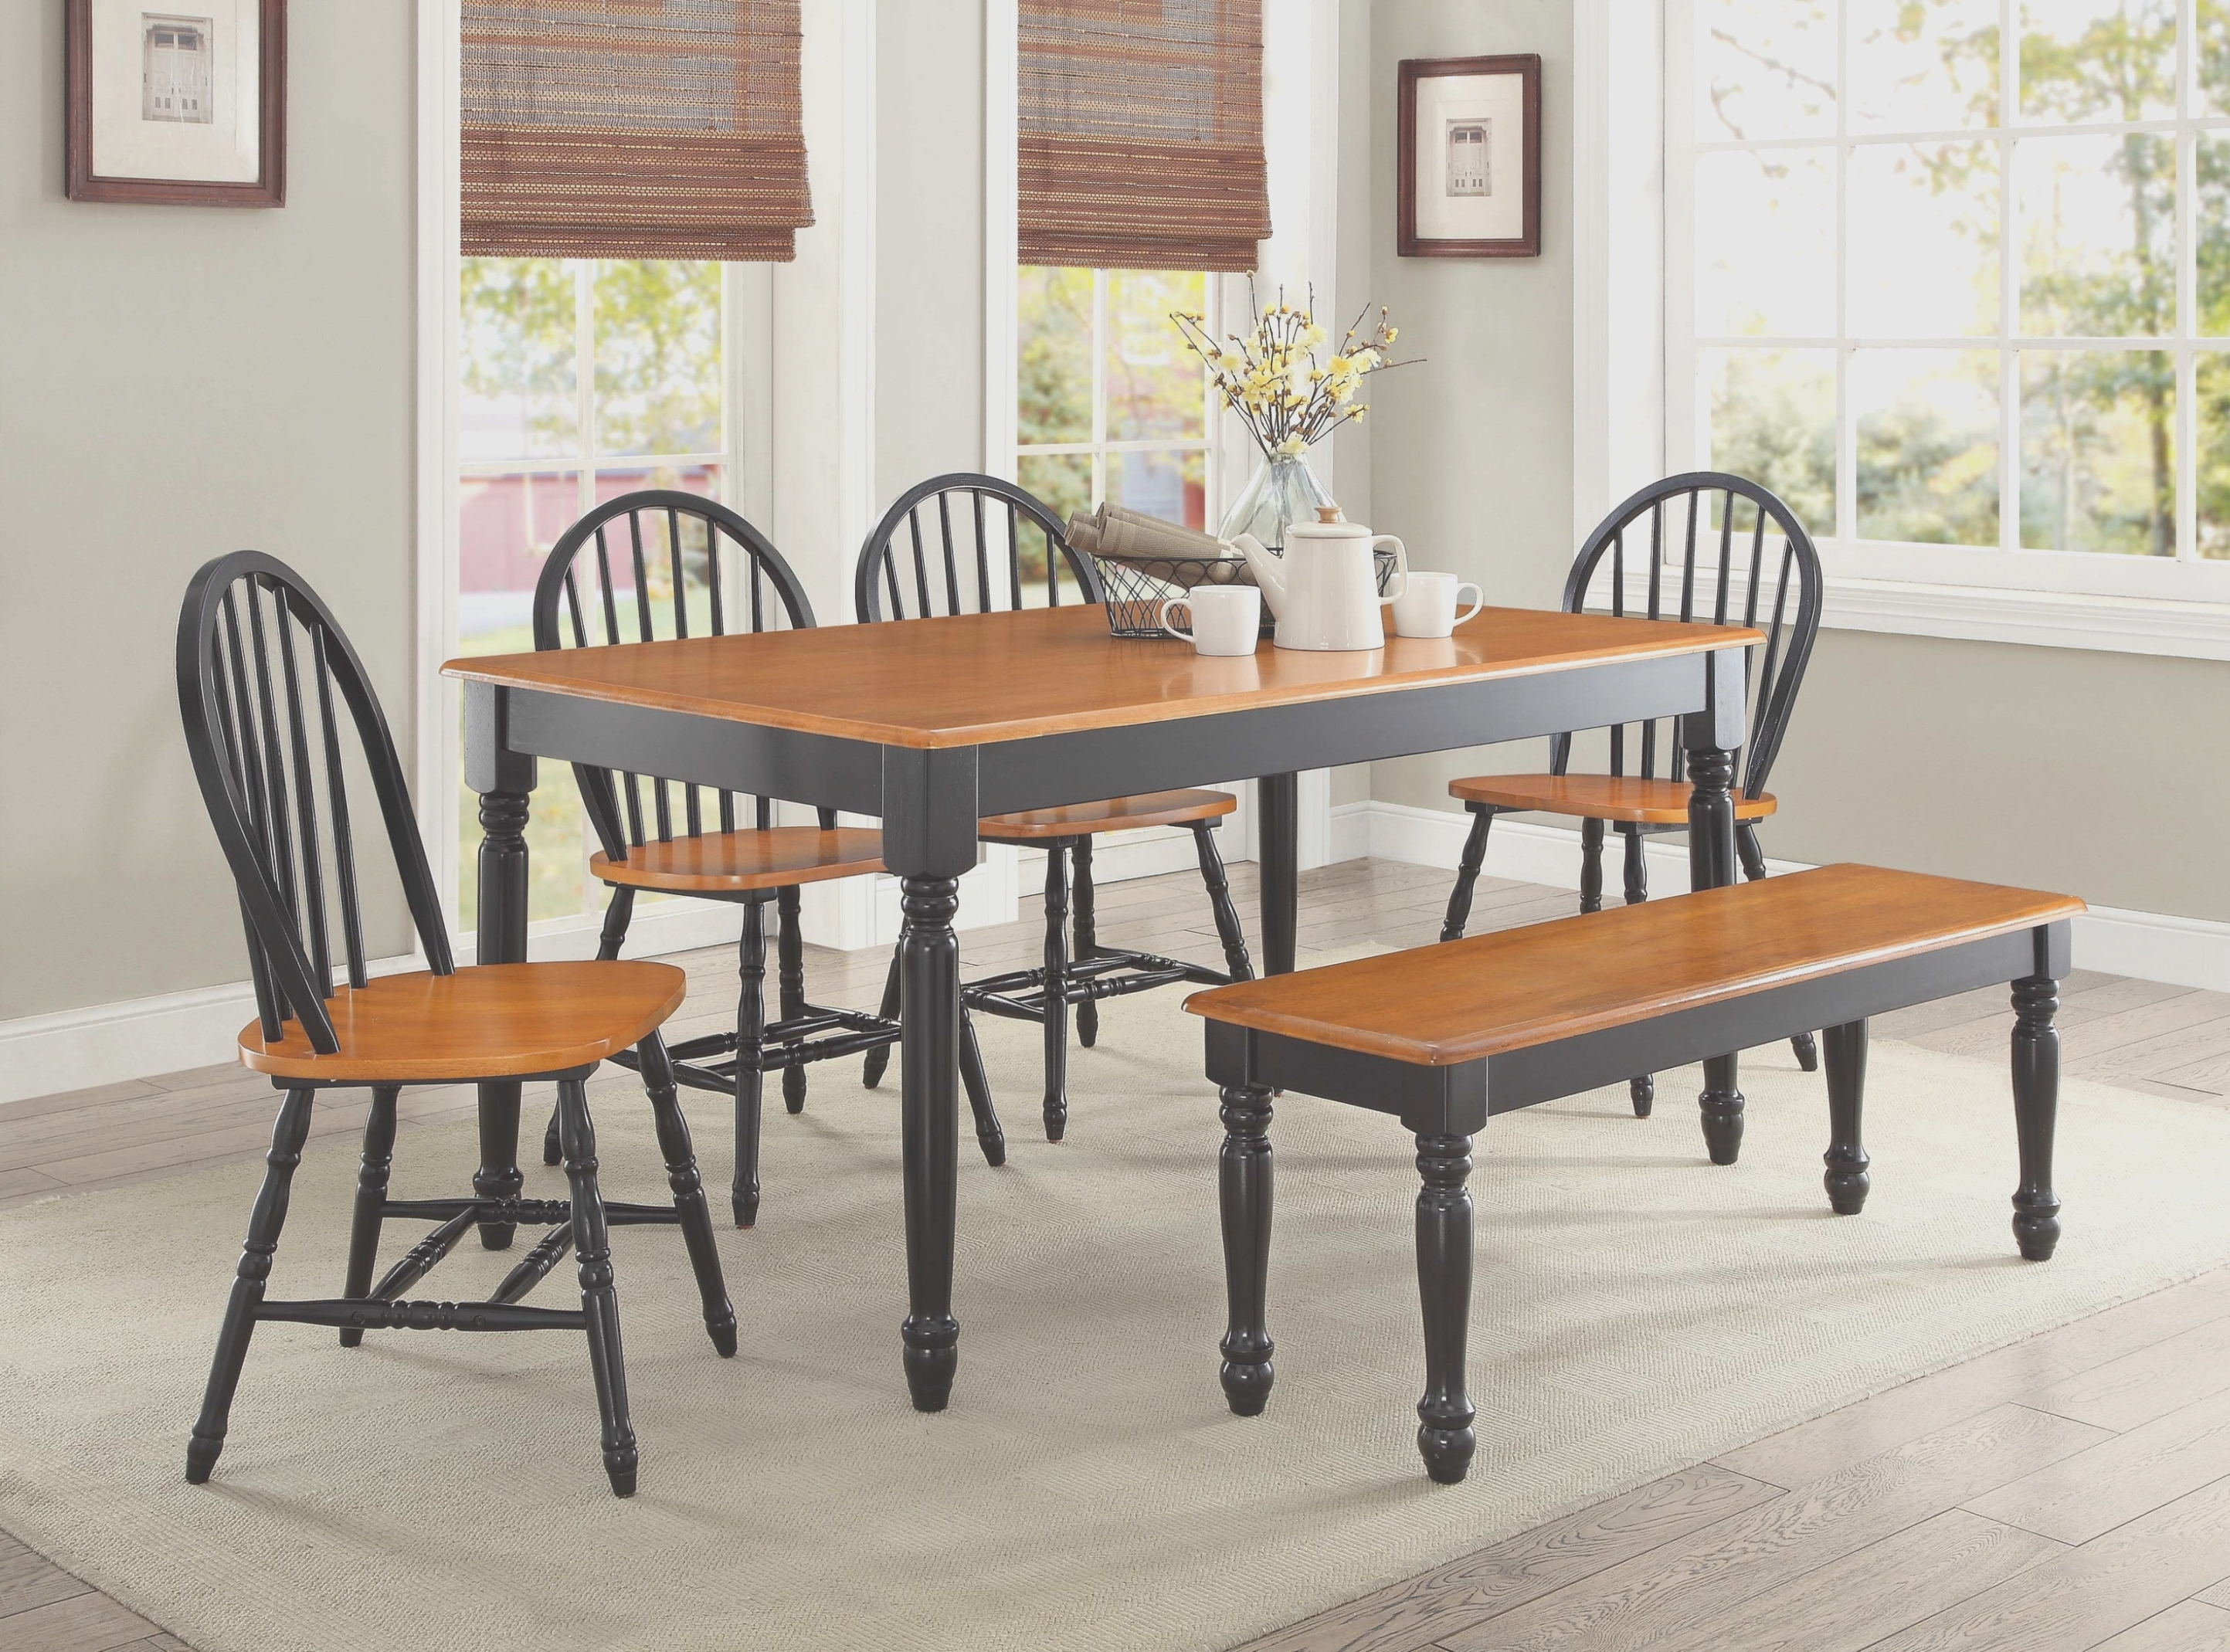 Well Liked Cheap Dining Room Chairs In Dining: Walmart Dining Table Set Within Walmart Small Dining Table (View 3 of 25)